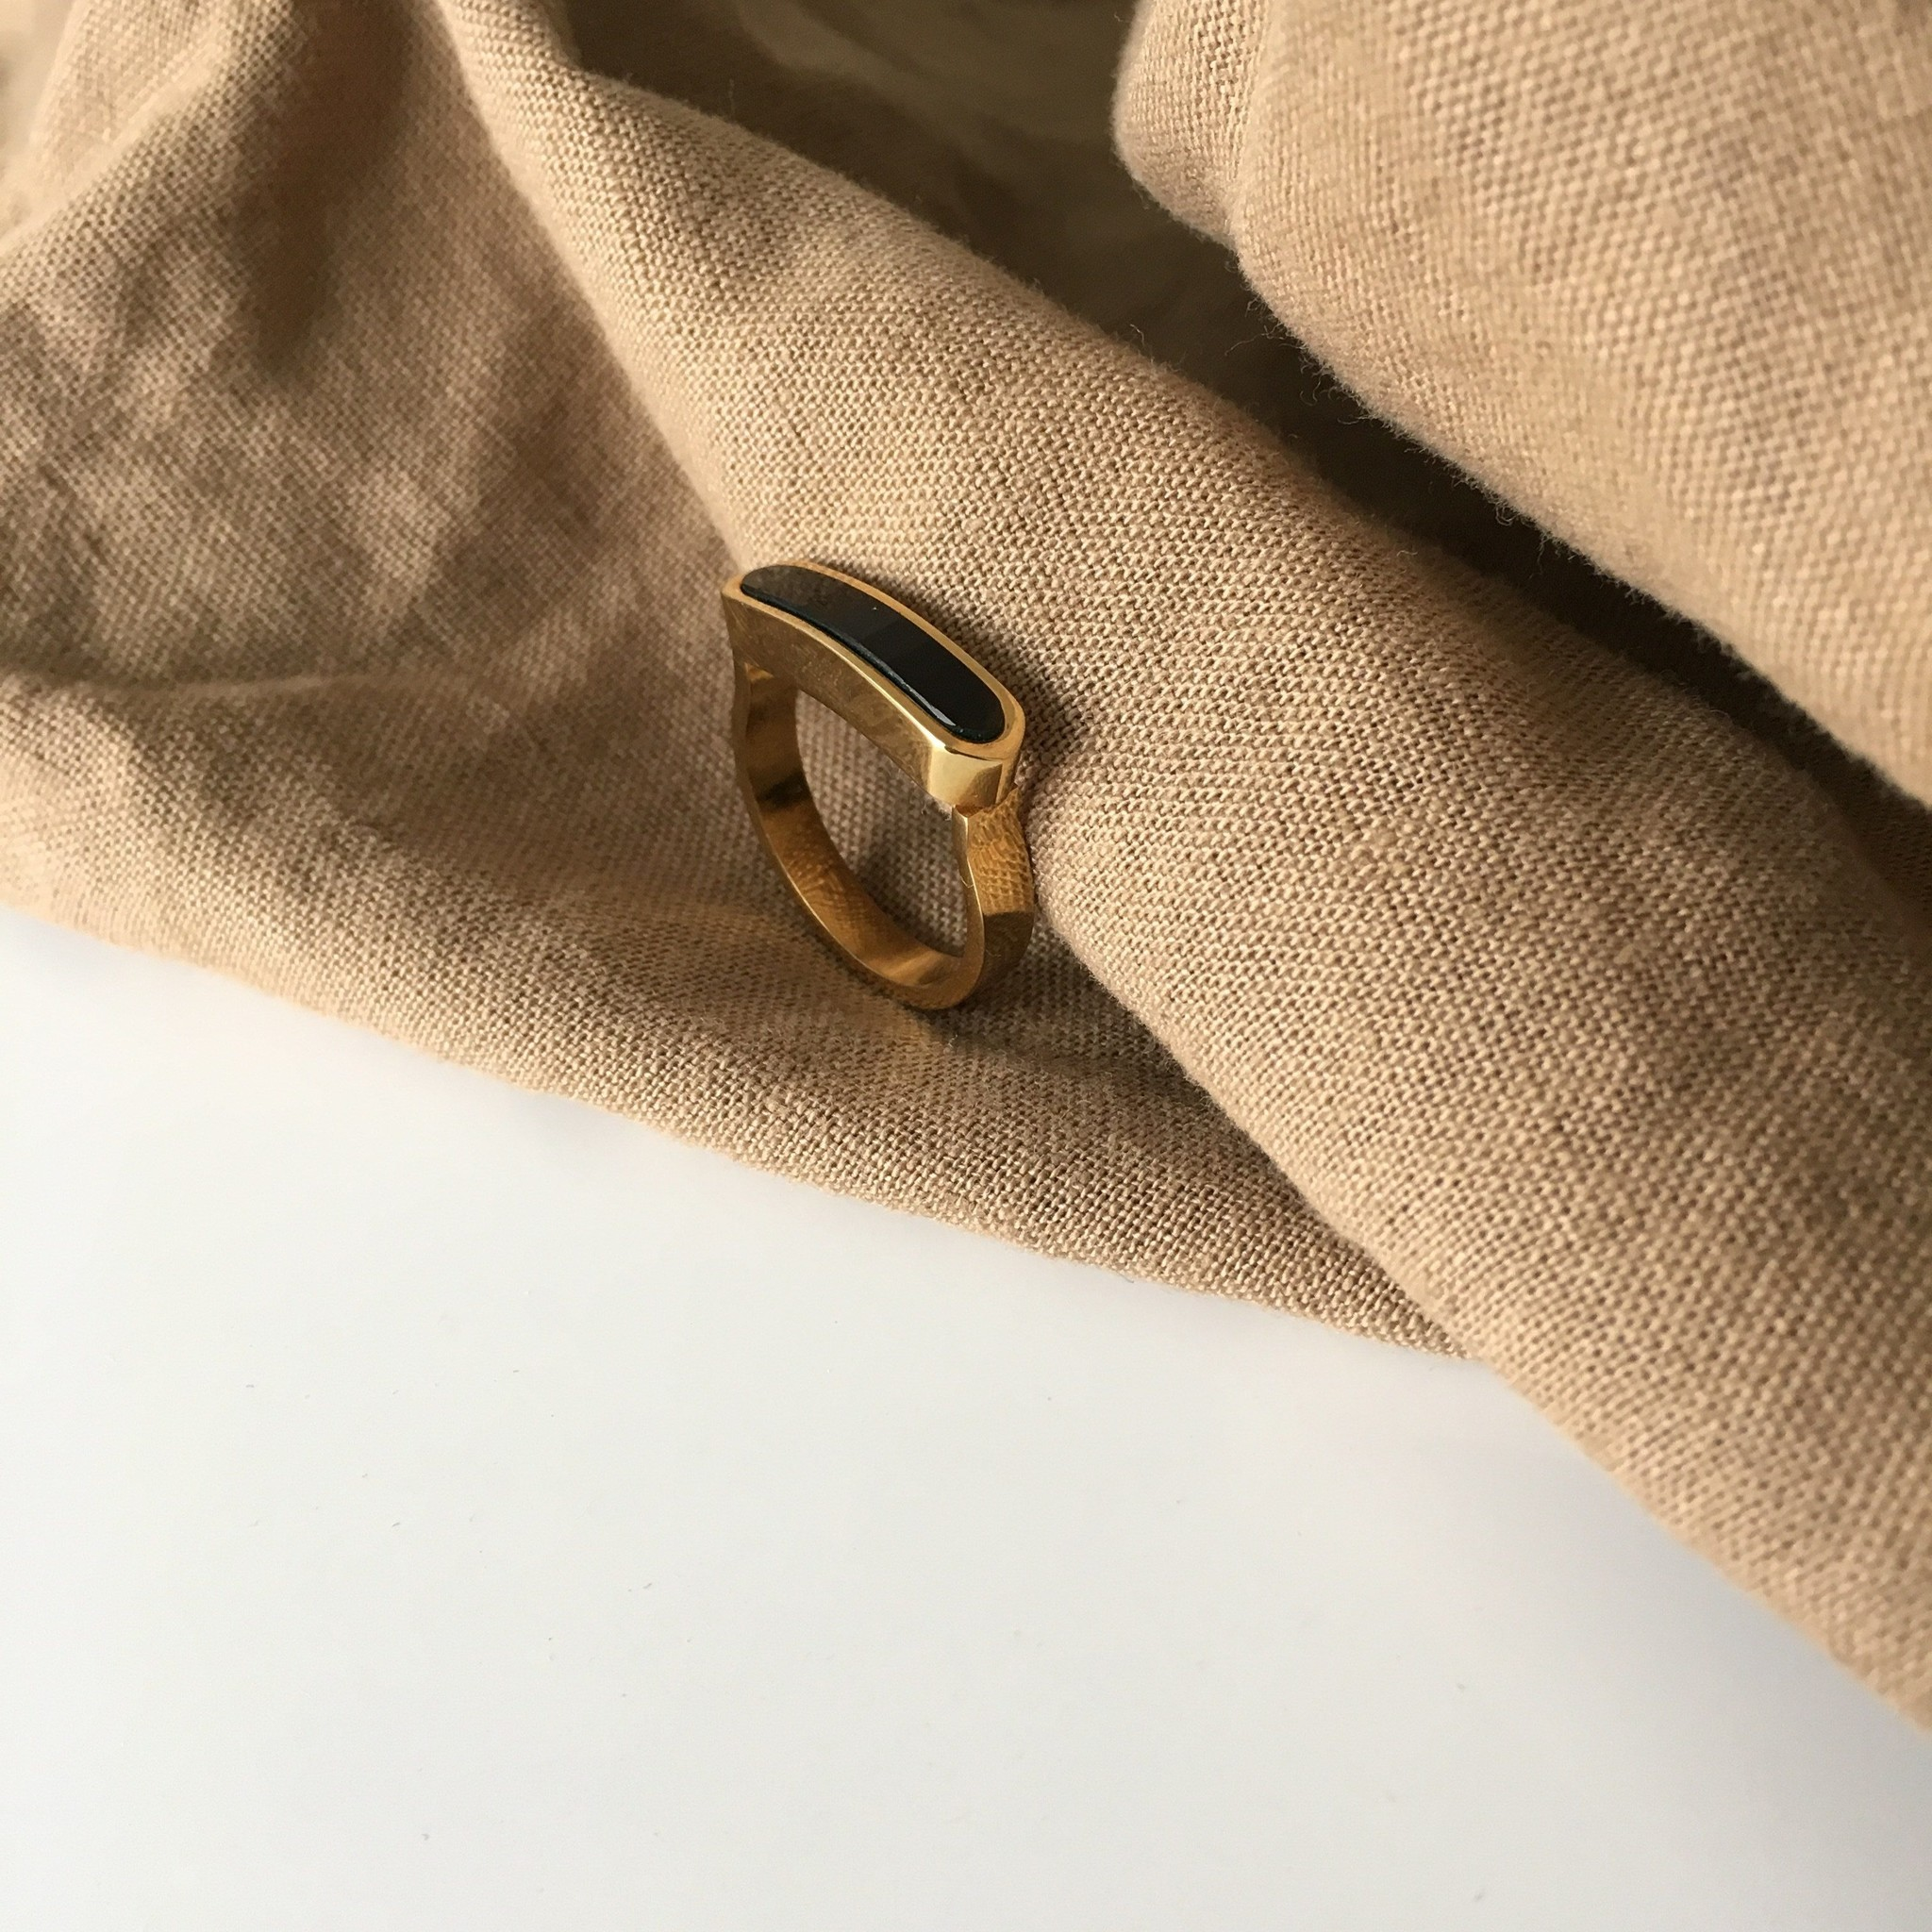 Energy Muse Ring - Gold with Black Onyx-3